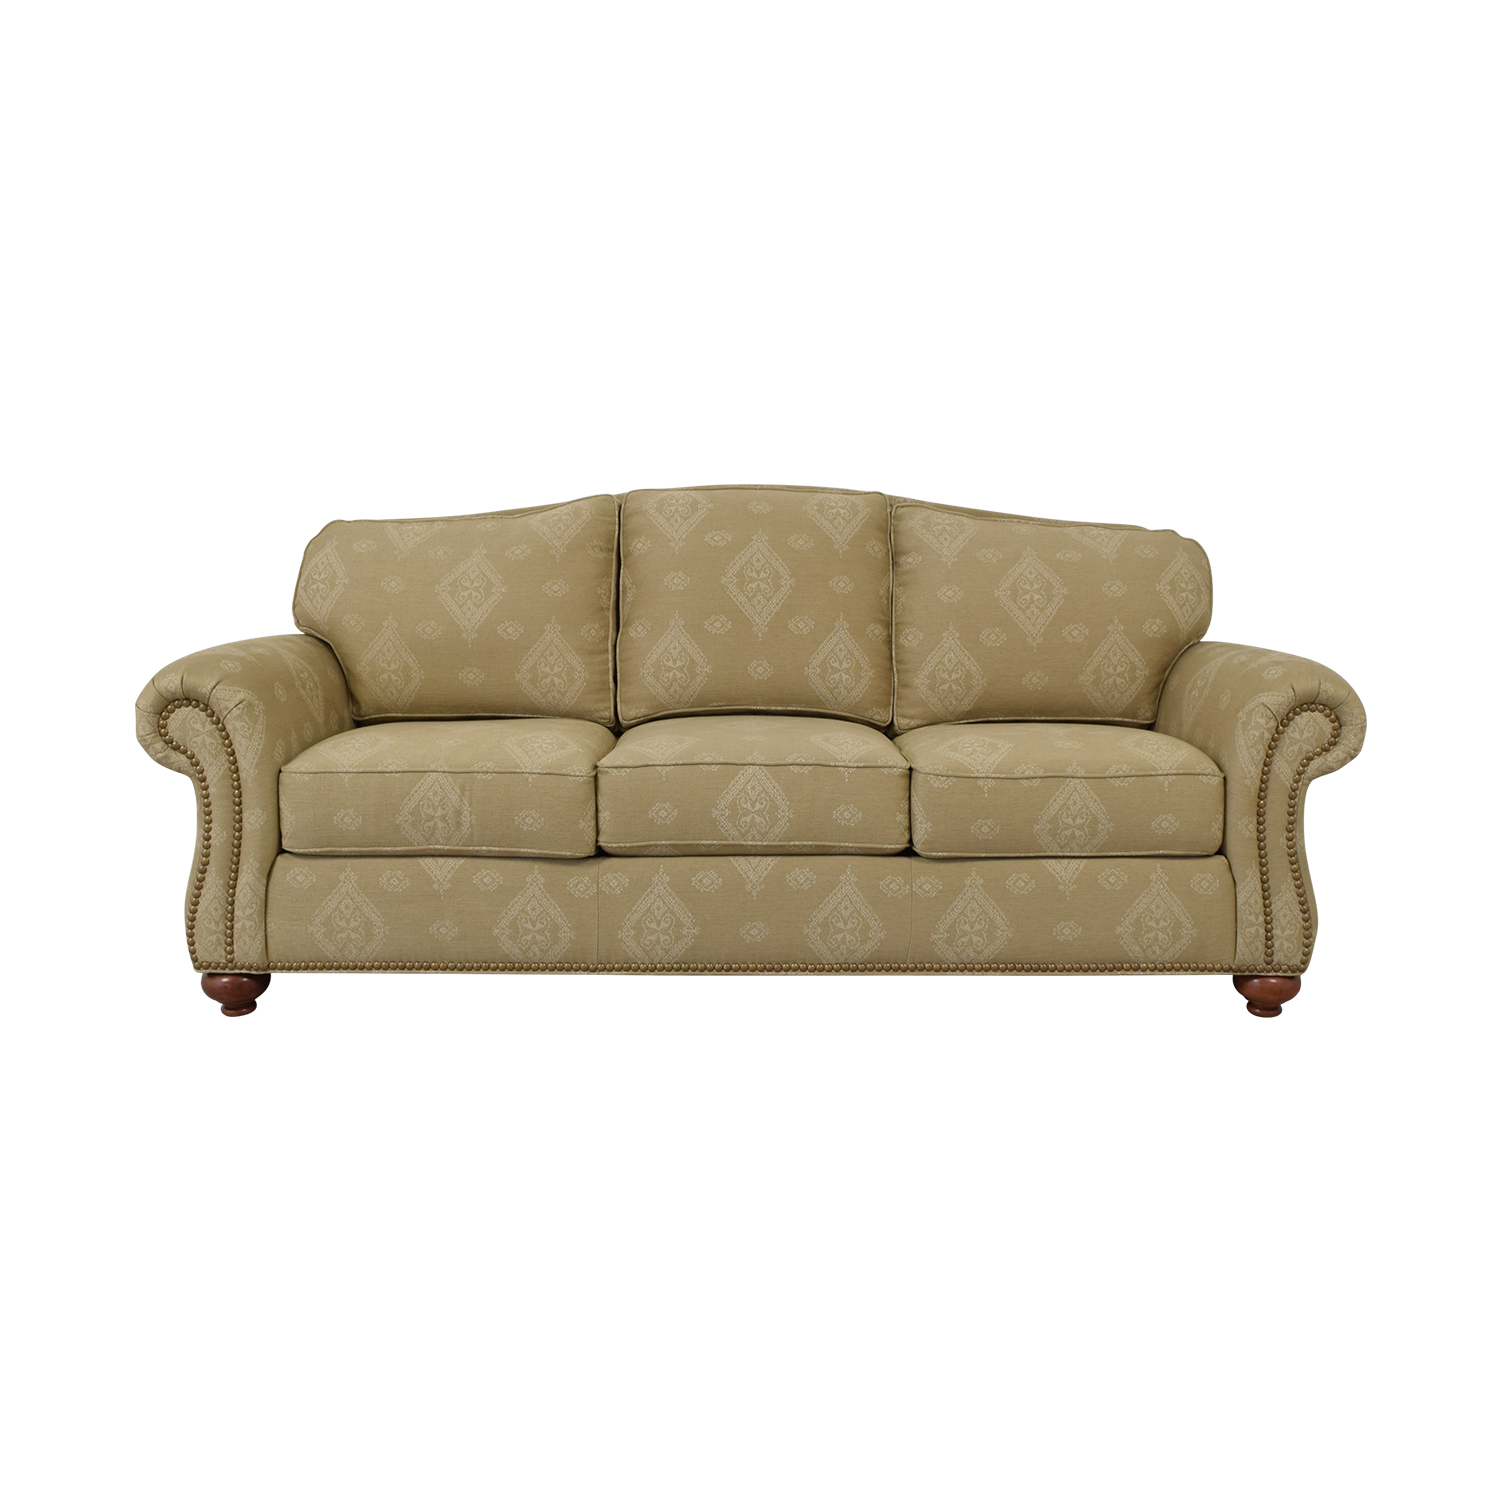 70 Off Ethan Allen Ethan Allen Beige Three Cushion